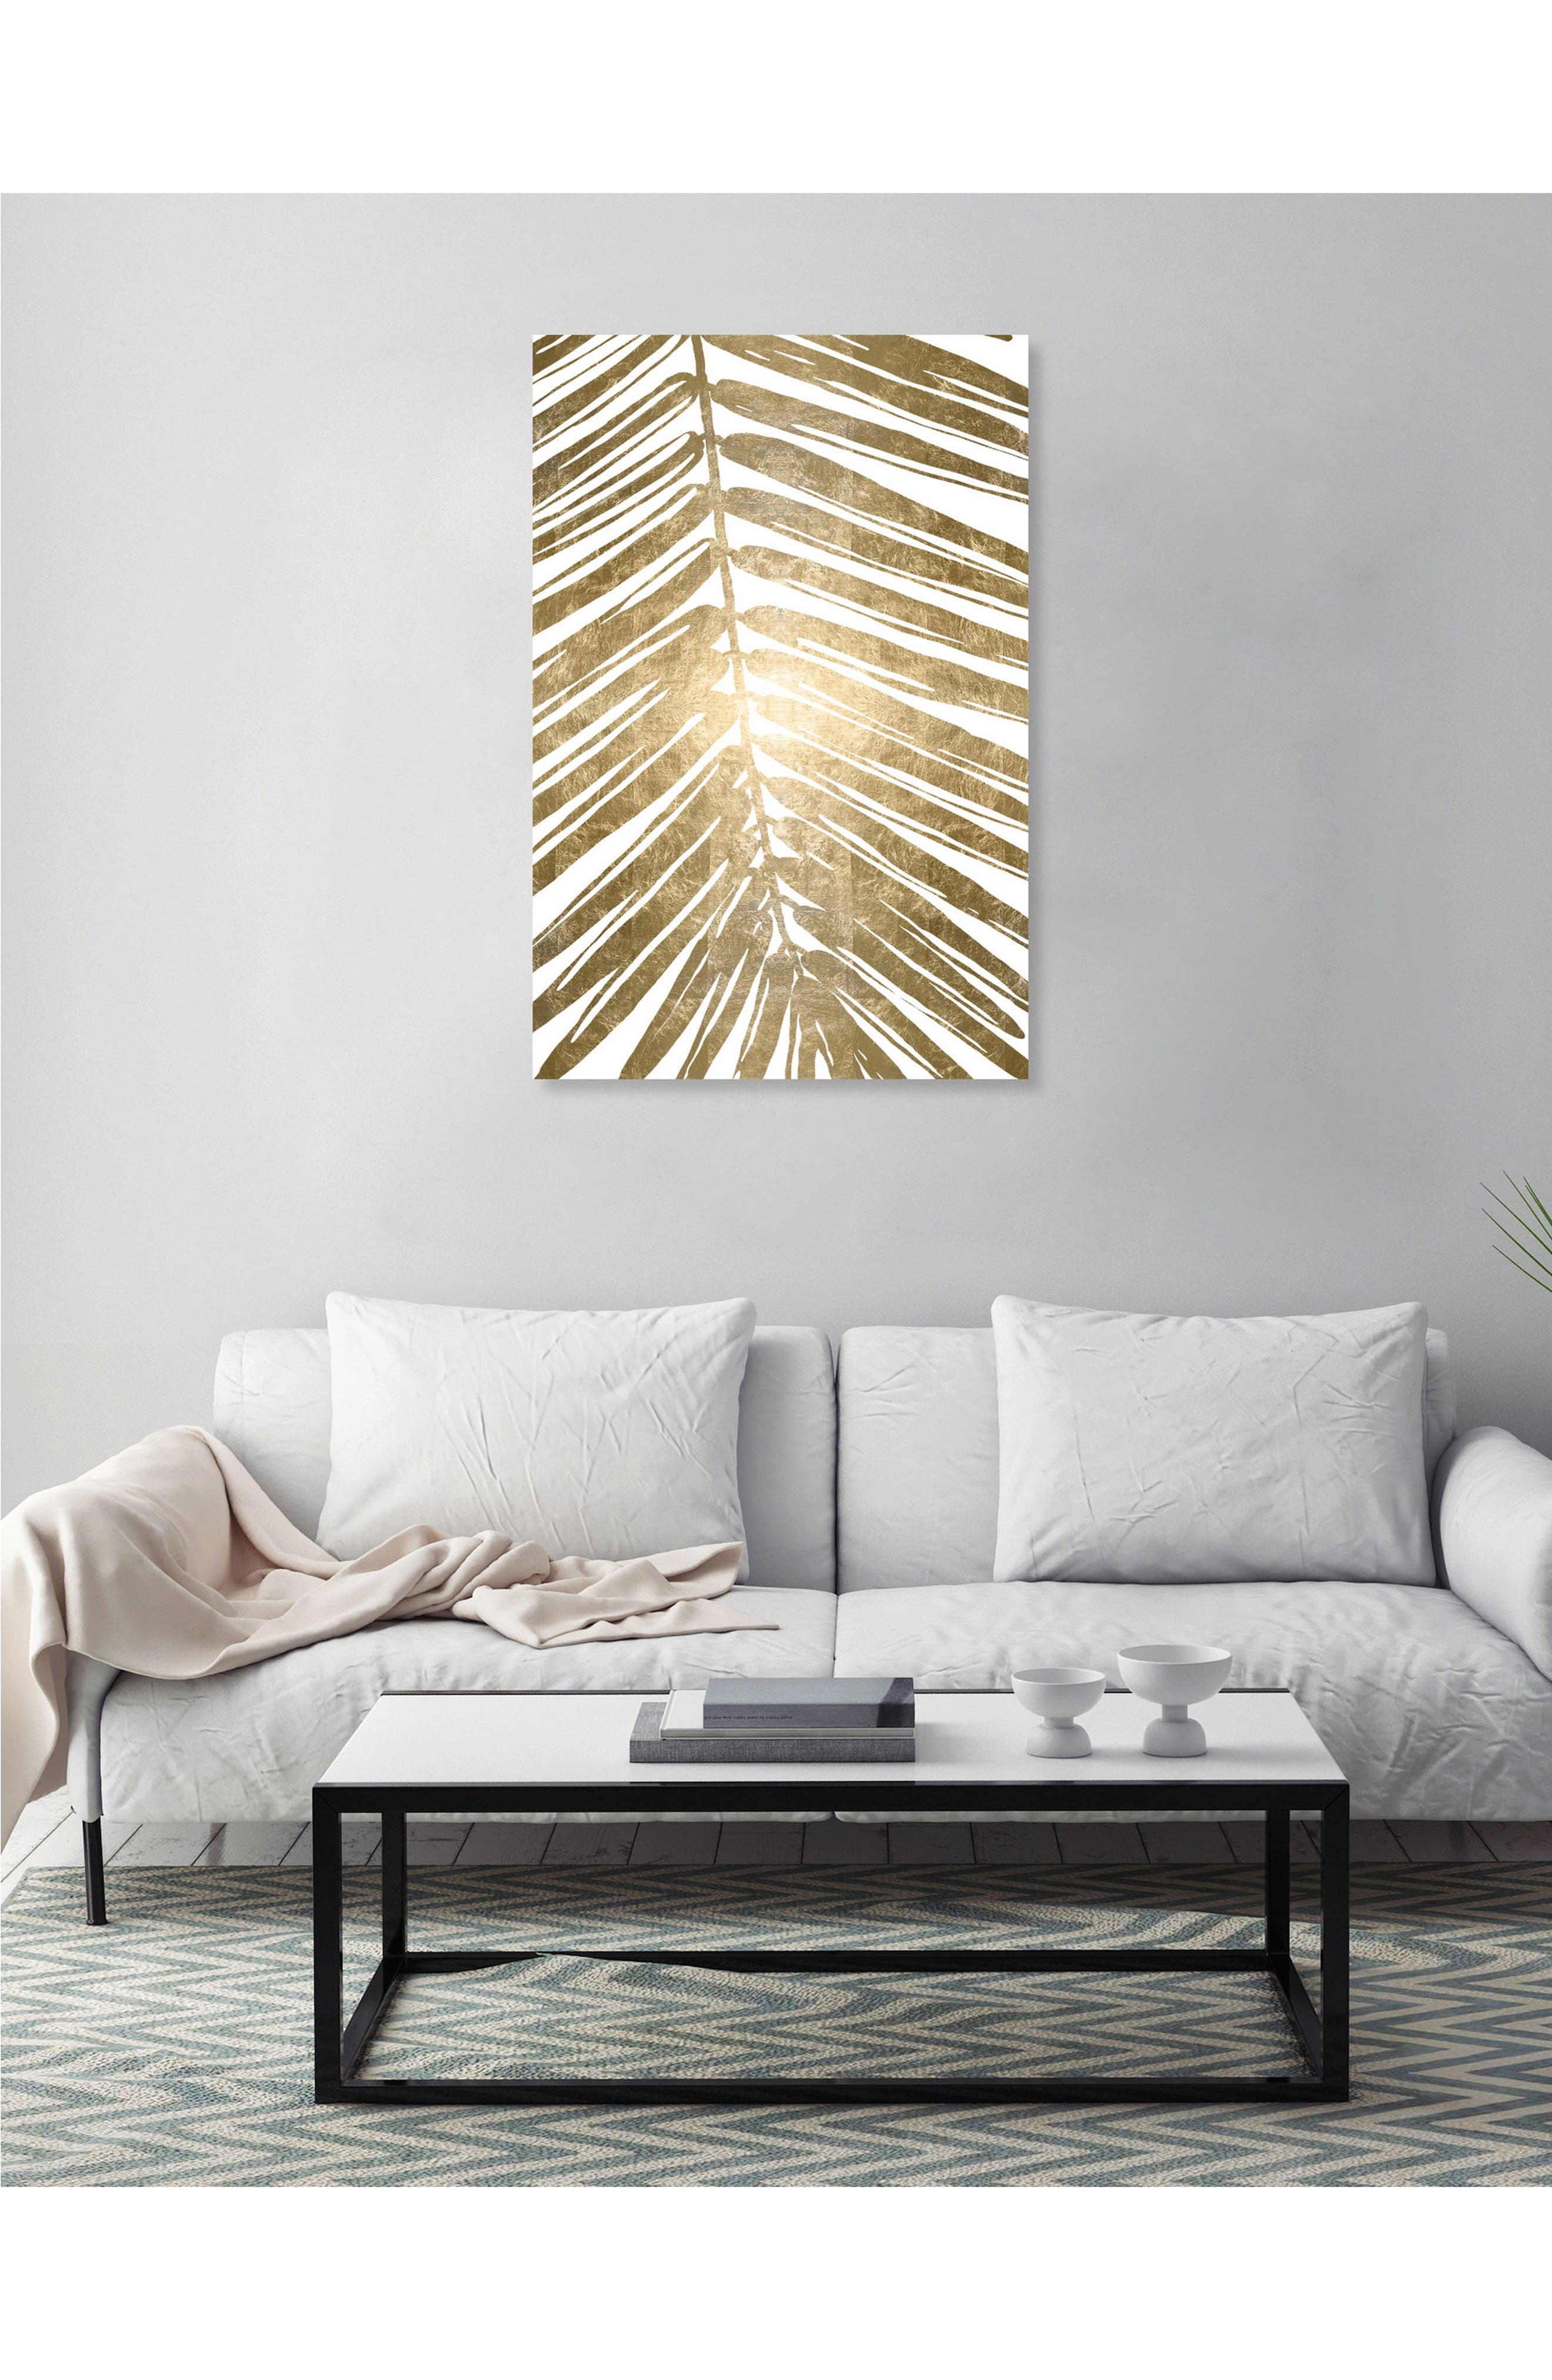 Gold Tropical Leaves IV Canvas Wall Art,                             Alternate thumbnail 2, color,                             METALLIC GOLD